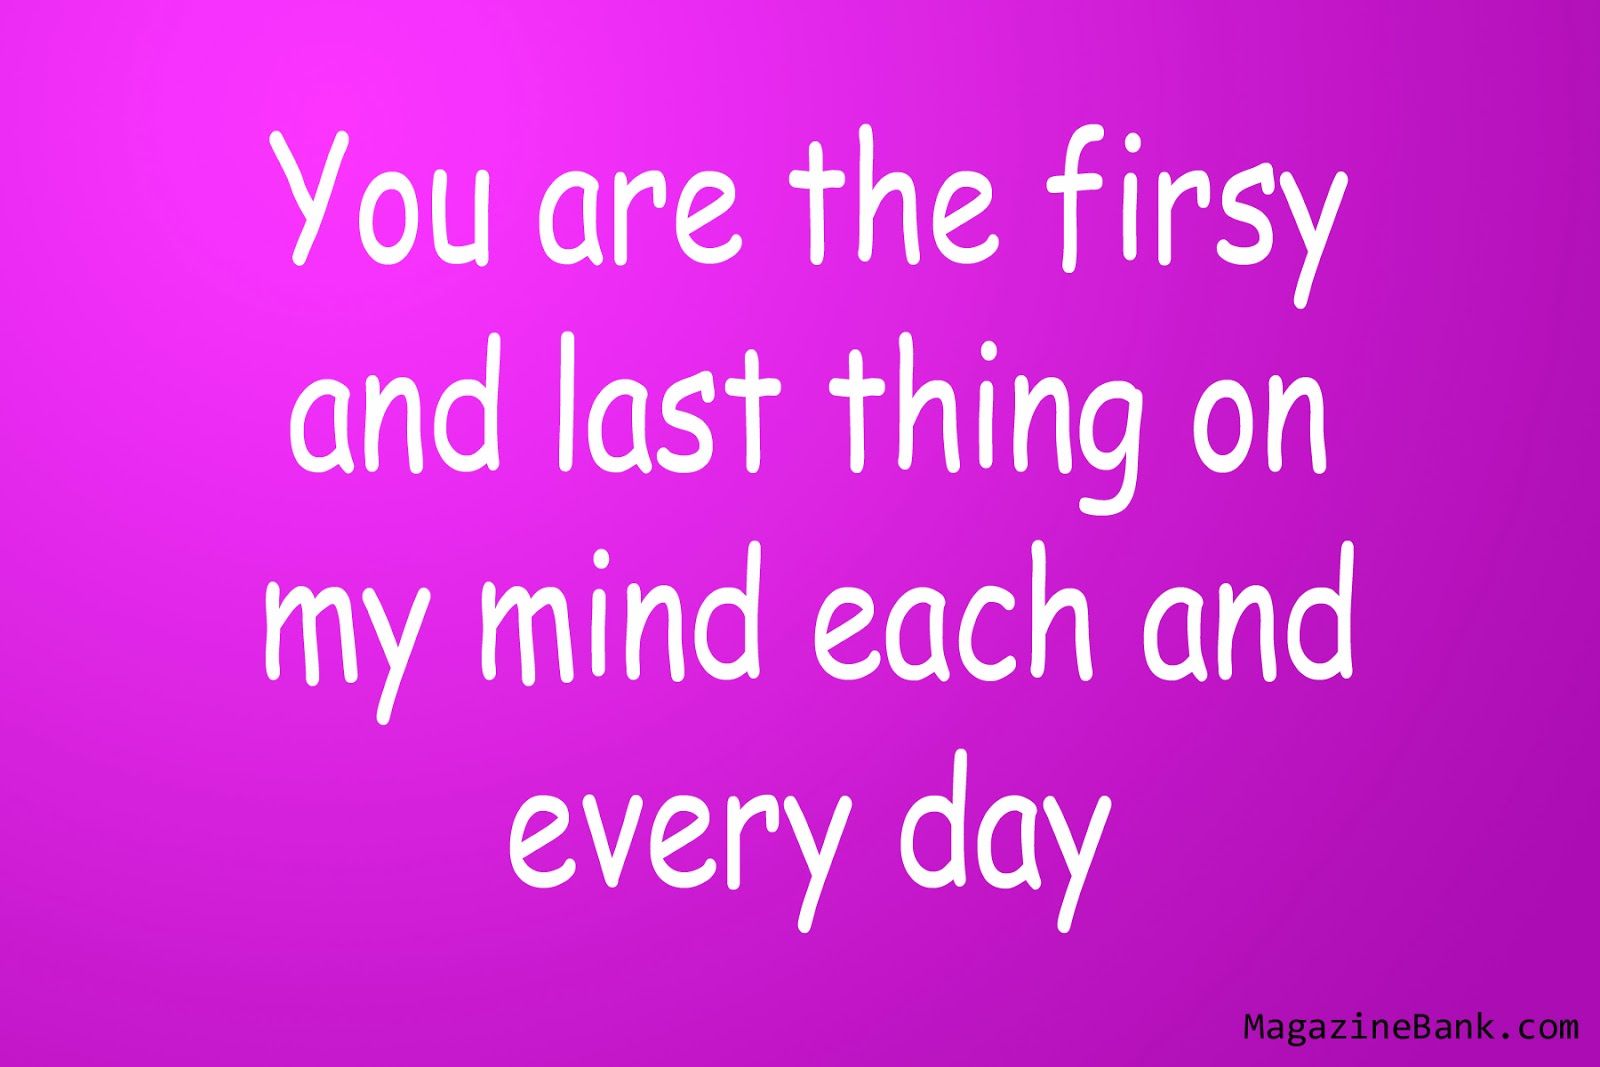 Download Wallpapers Of Love Quotes And Sayings Gallery